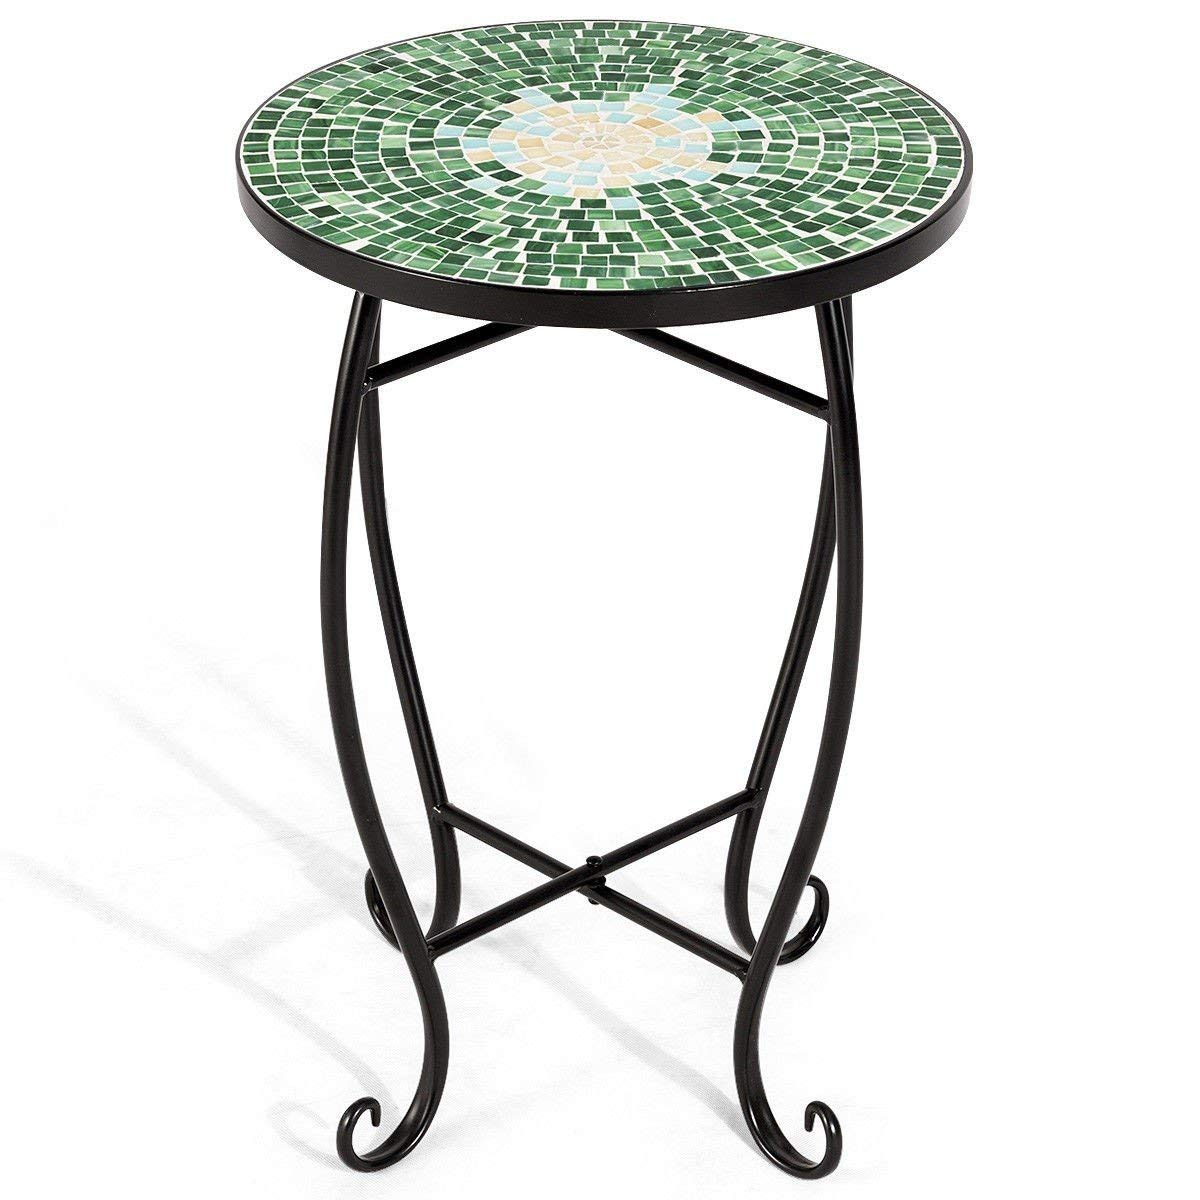 round glass accent table find threshold mosaic get quotations custpromo metal side plant stand with cobalt top indoor outdoor tray small retro ikea end tables bedroom couch brass